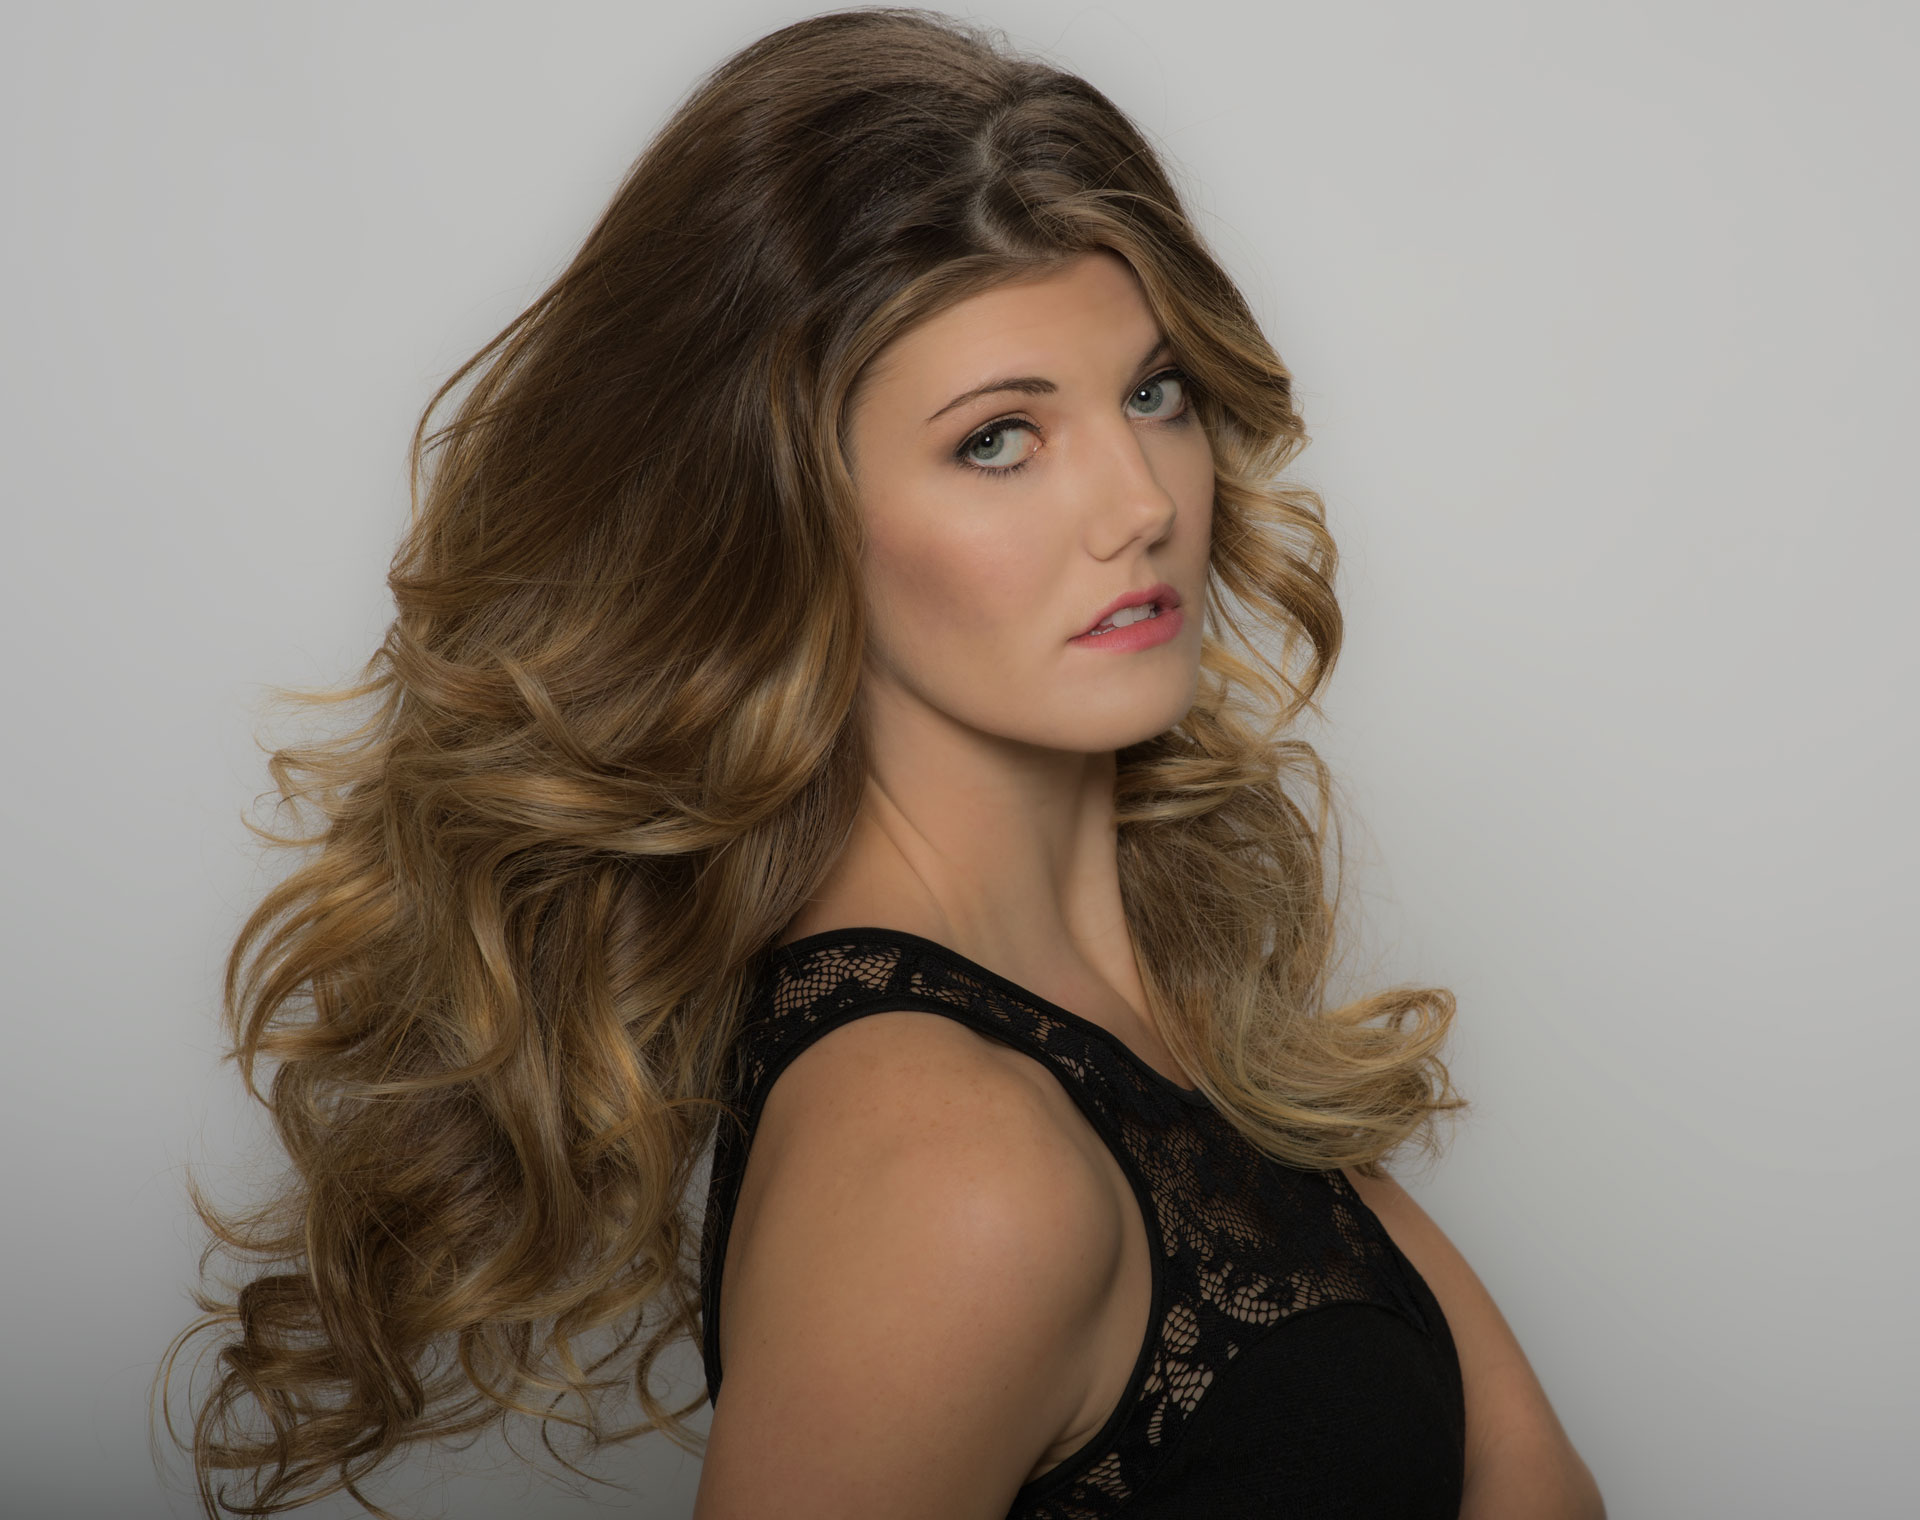 Dallas Best Hair salon Ombre Balayage Ombreage Highlights Blonde Brunnette Hair Color Hair Colorist Hair Stylists Specialist Dallas Plano Frisco Allen McKinney Addison TX DFW 2